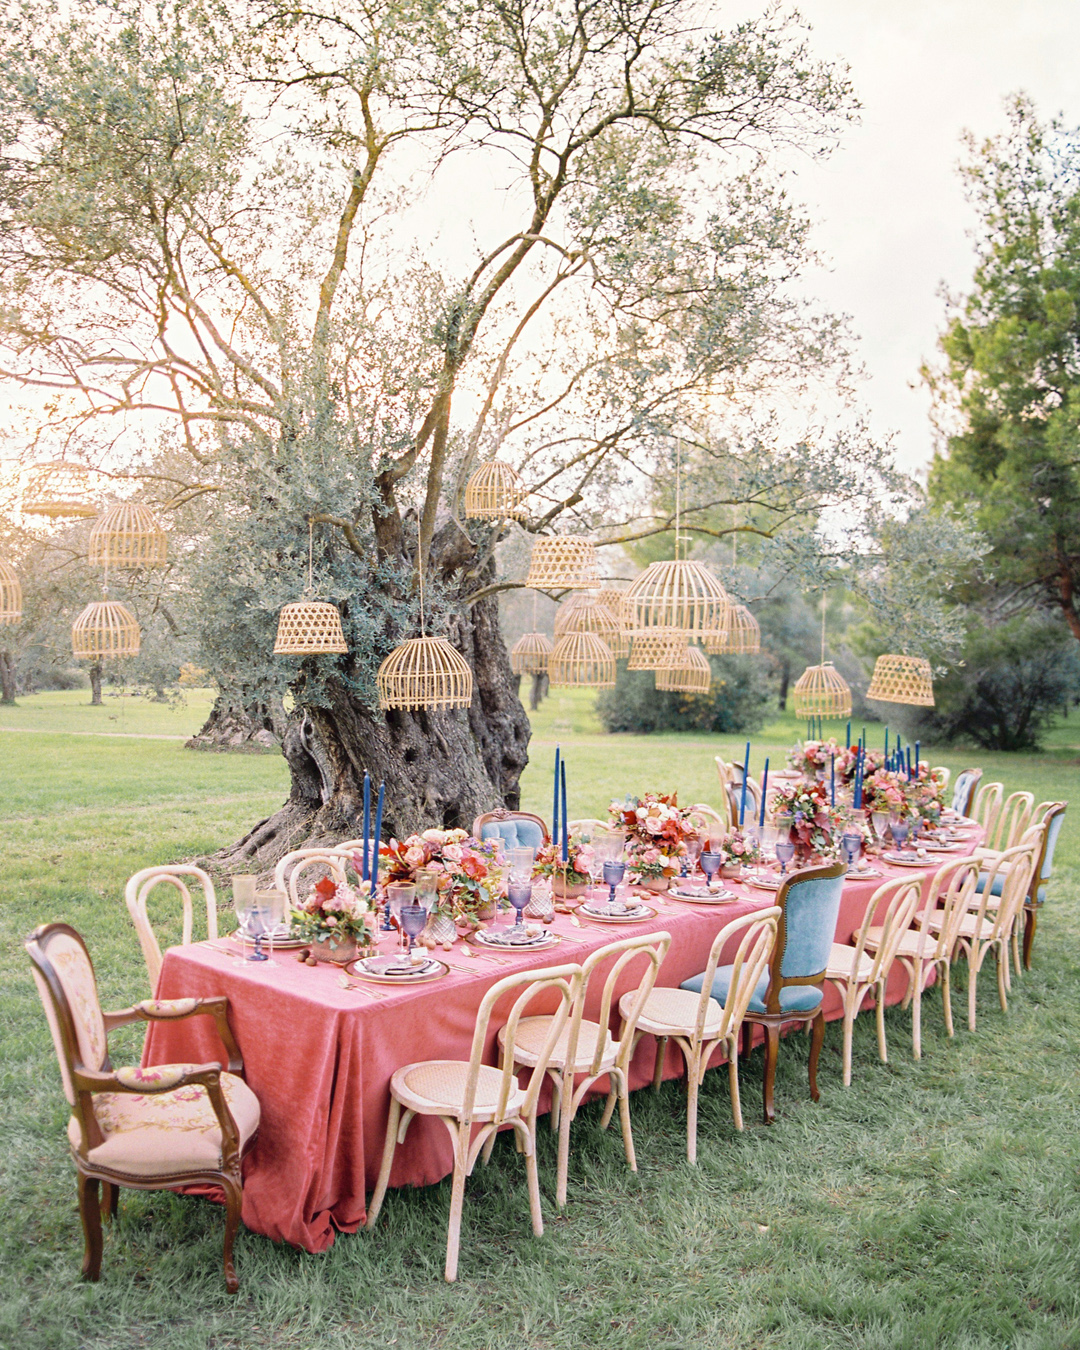 family style table with hanging lanterns in a tree